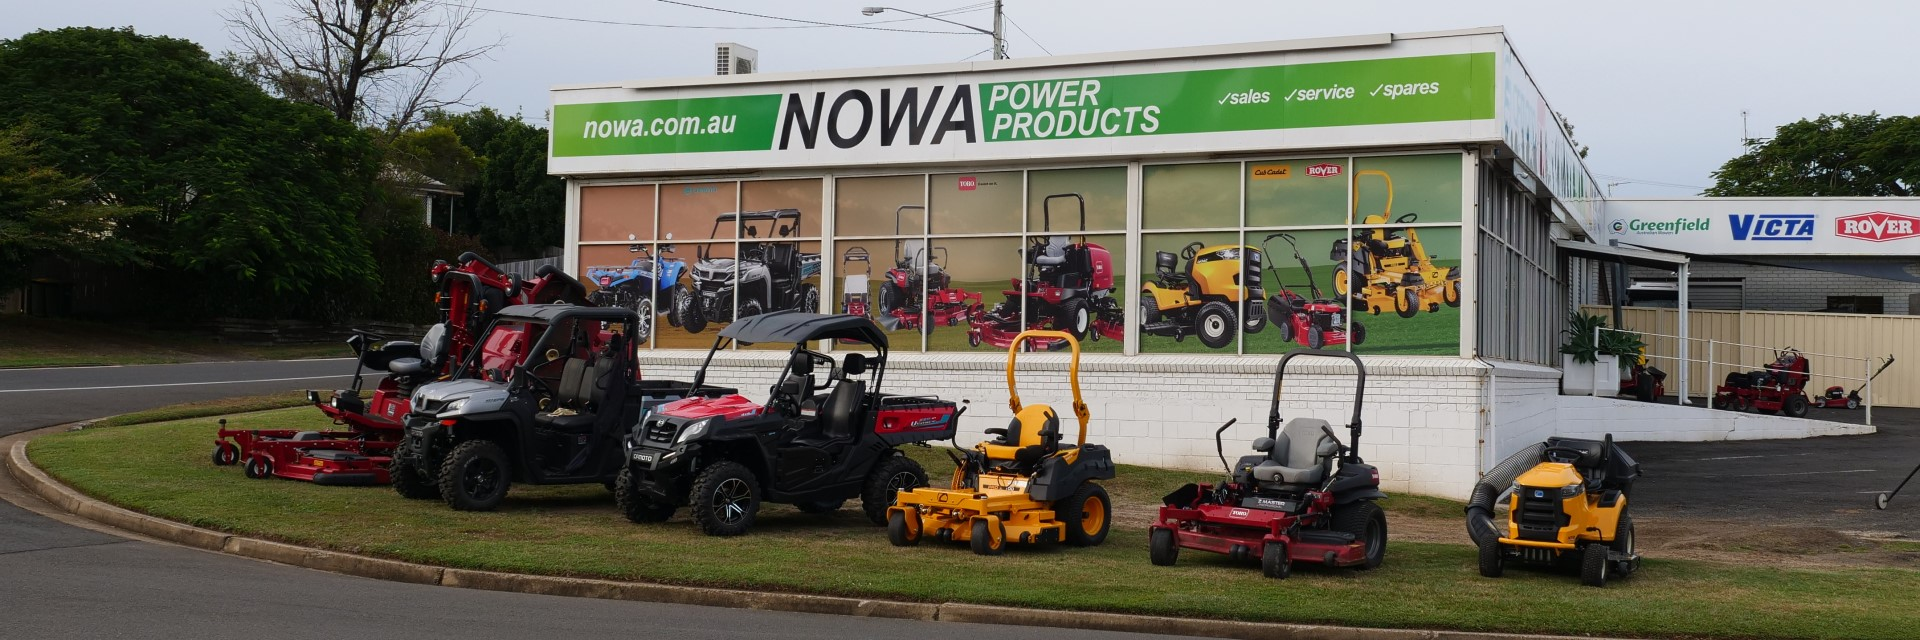 Nowa Power Products Outside